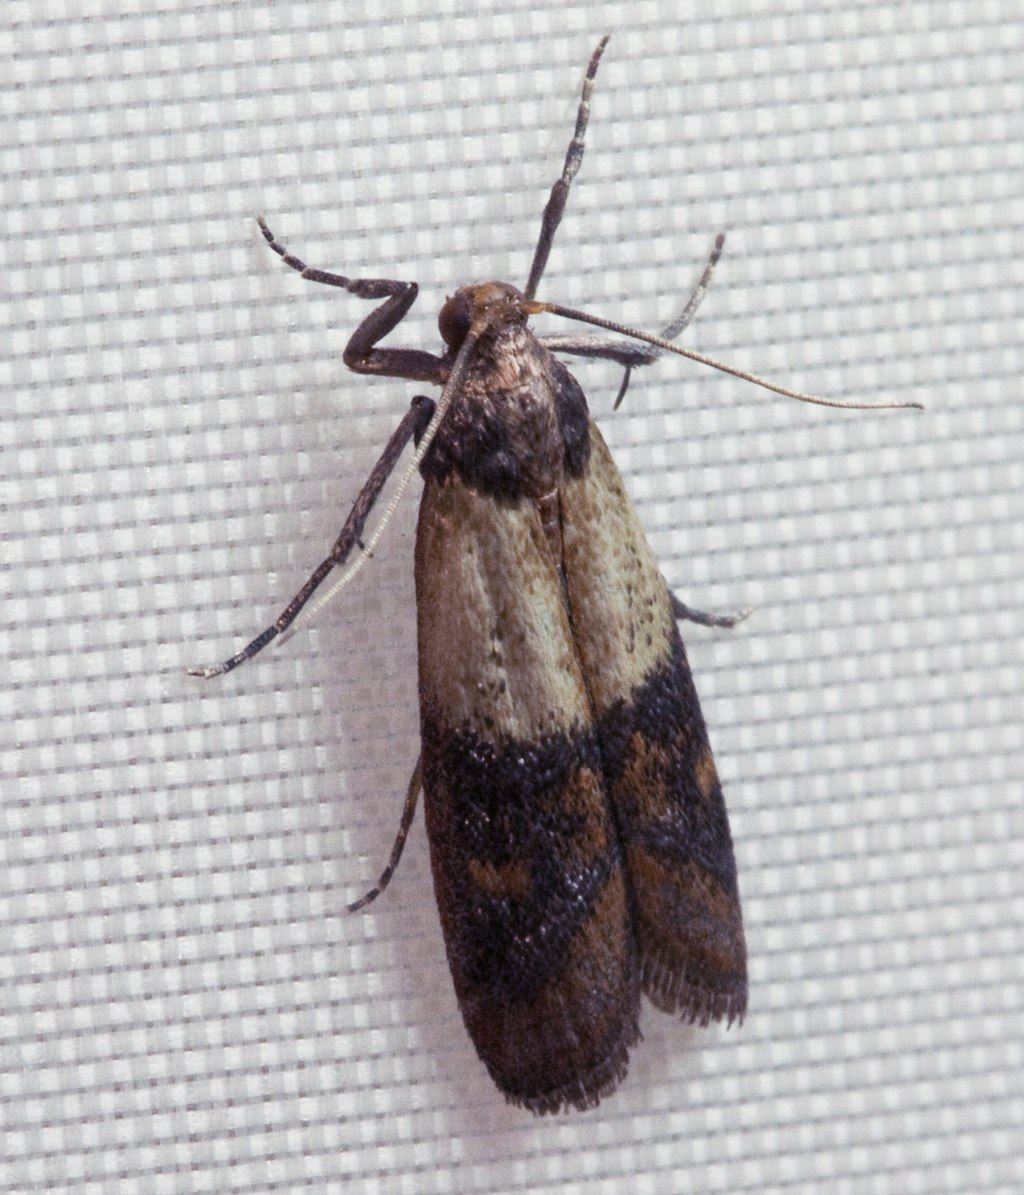 Indianmeal moth 2009